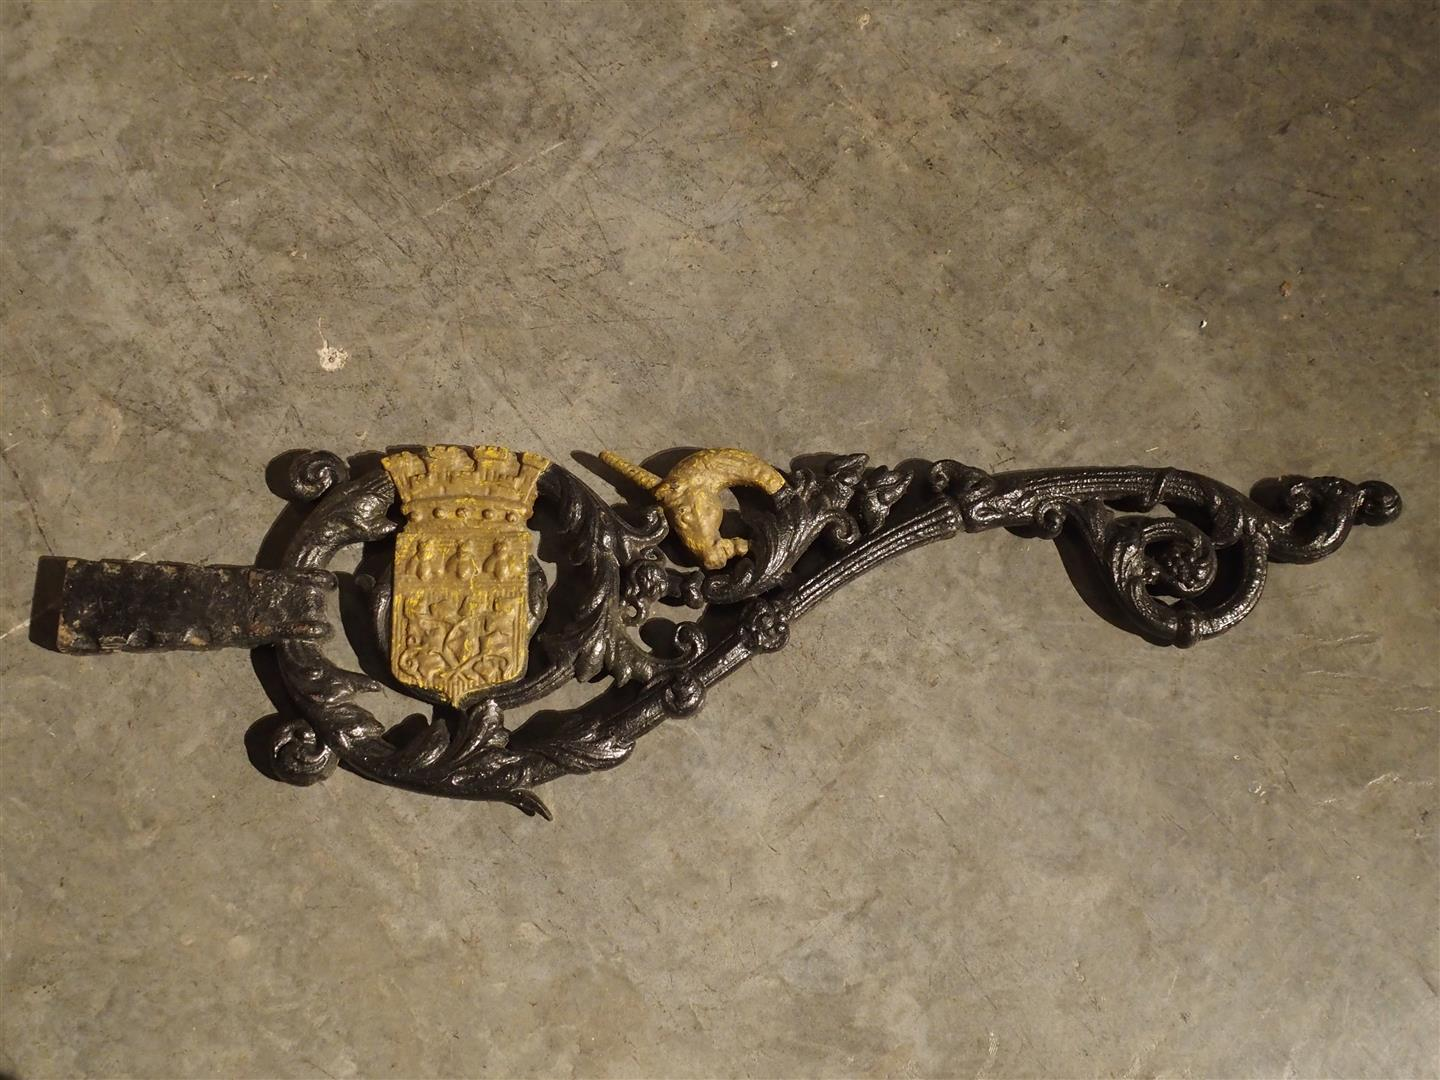 Antique Painted Cast Iron Lantern or Sign Holder from Amiens, France